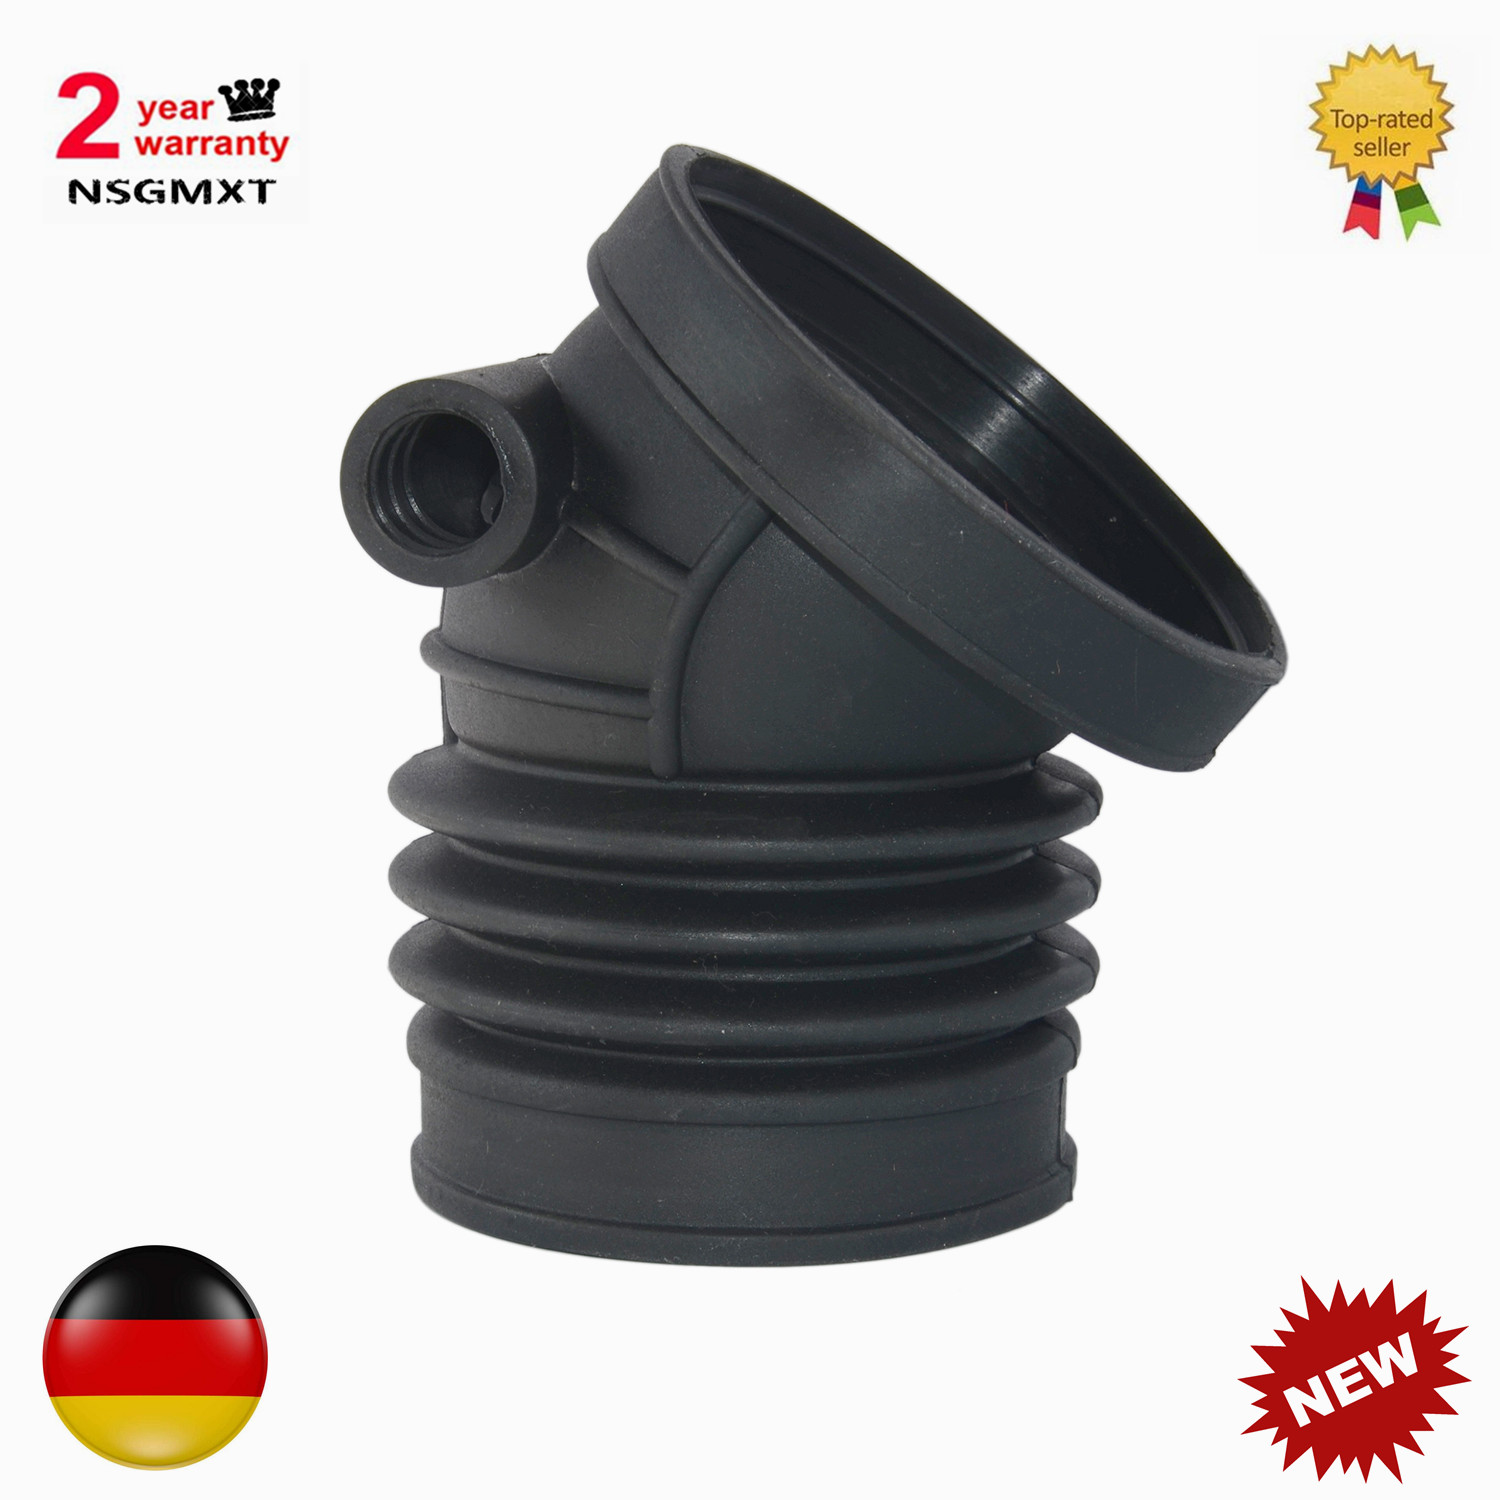 1 year Warranty BMW E30 Intake Boot Air Flow Meter to Throttle Housing O.E.M